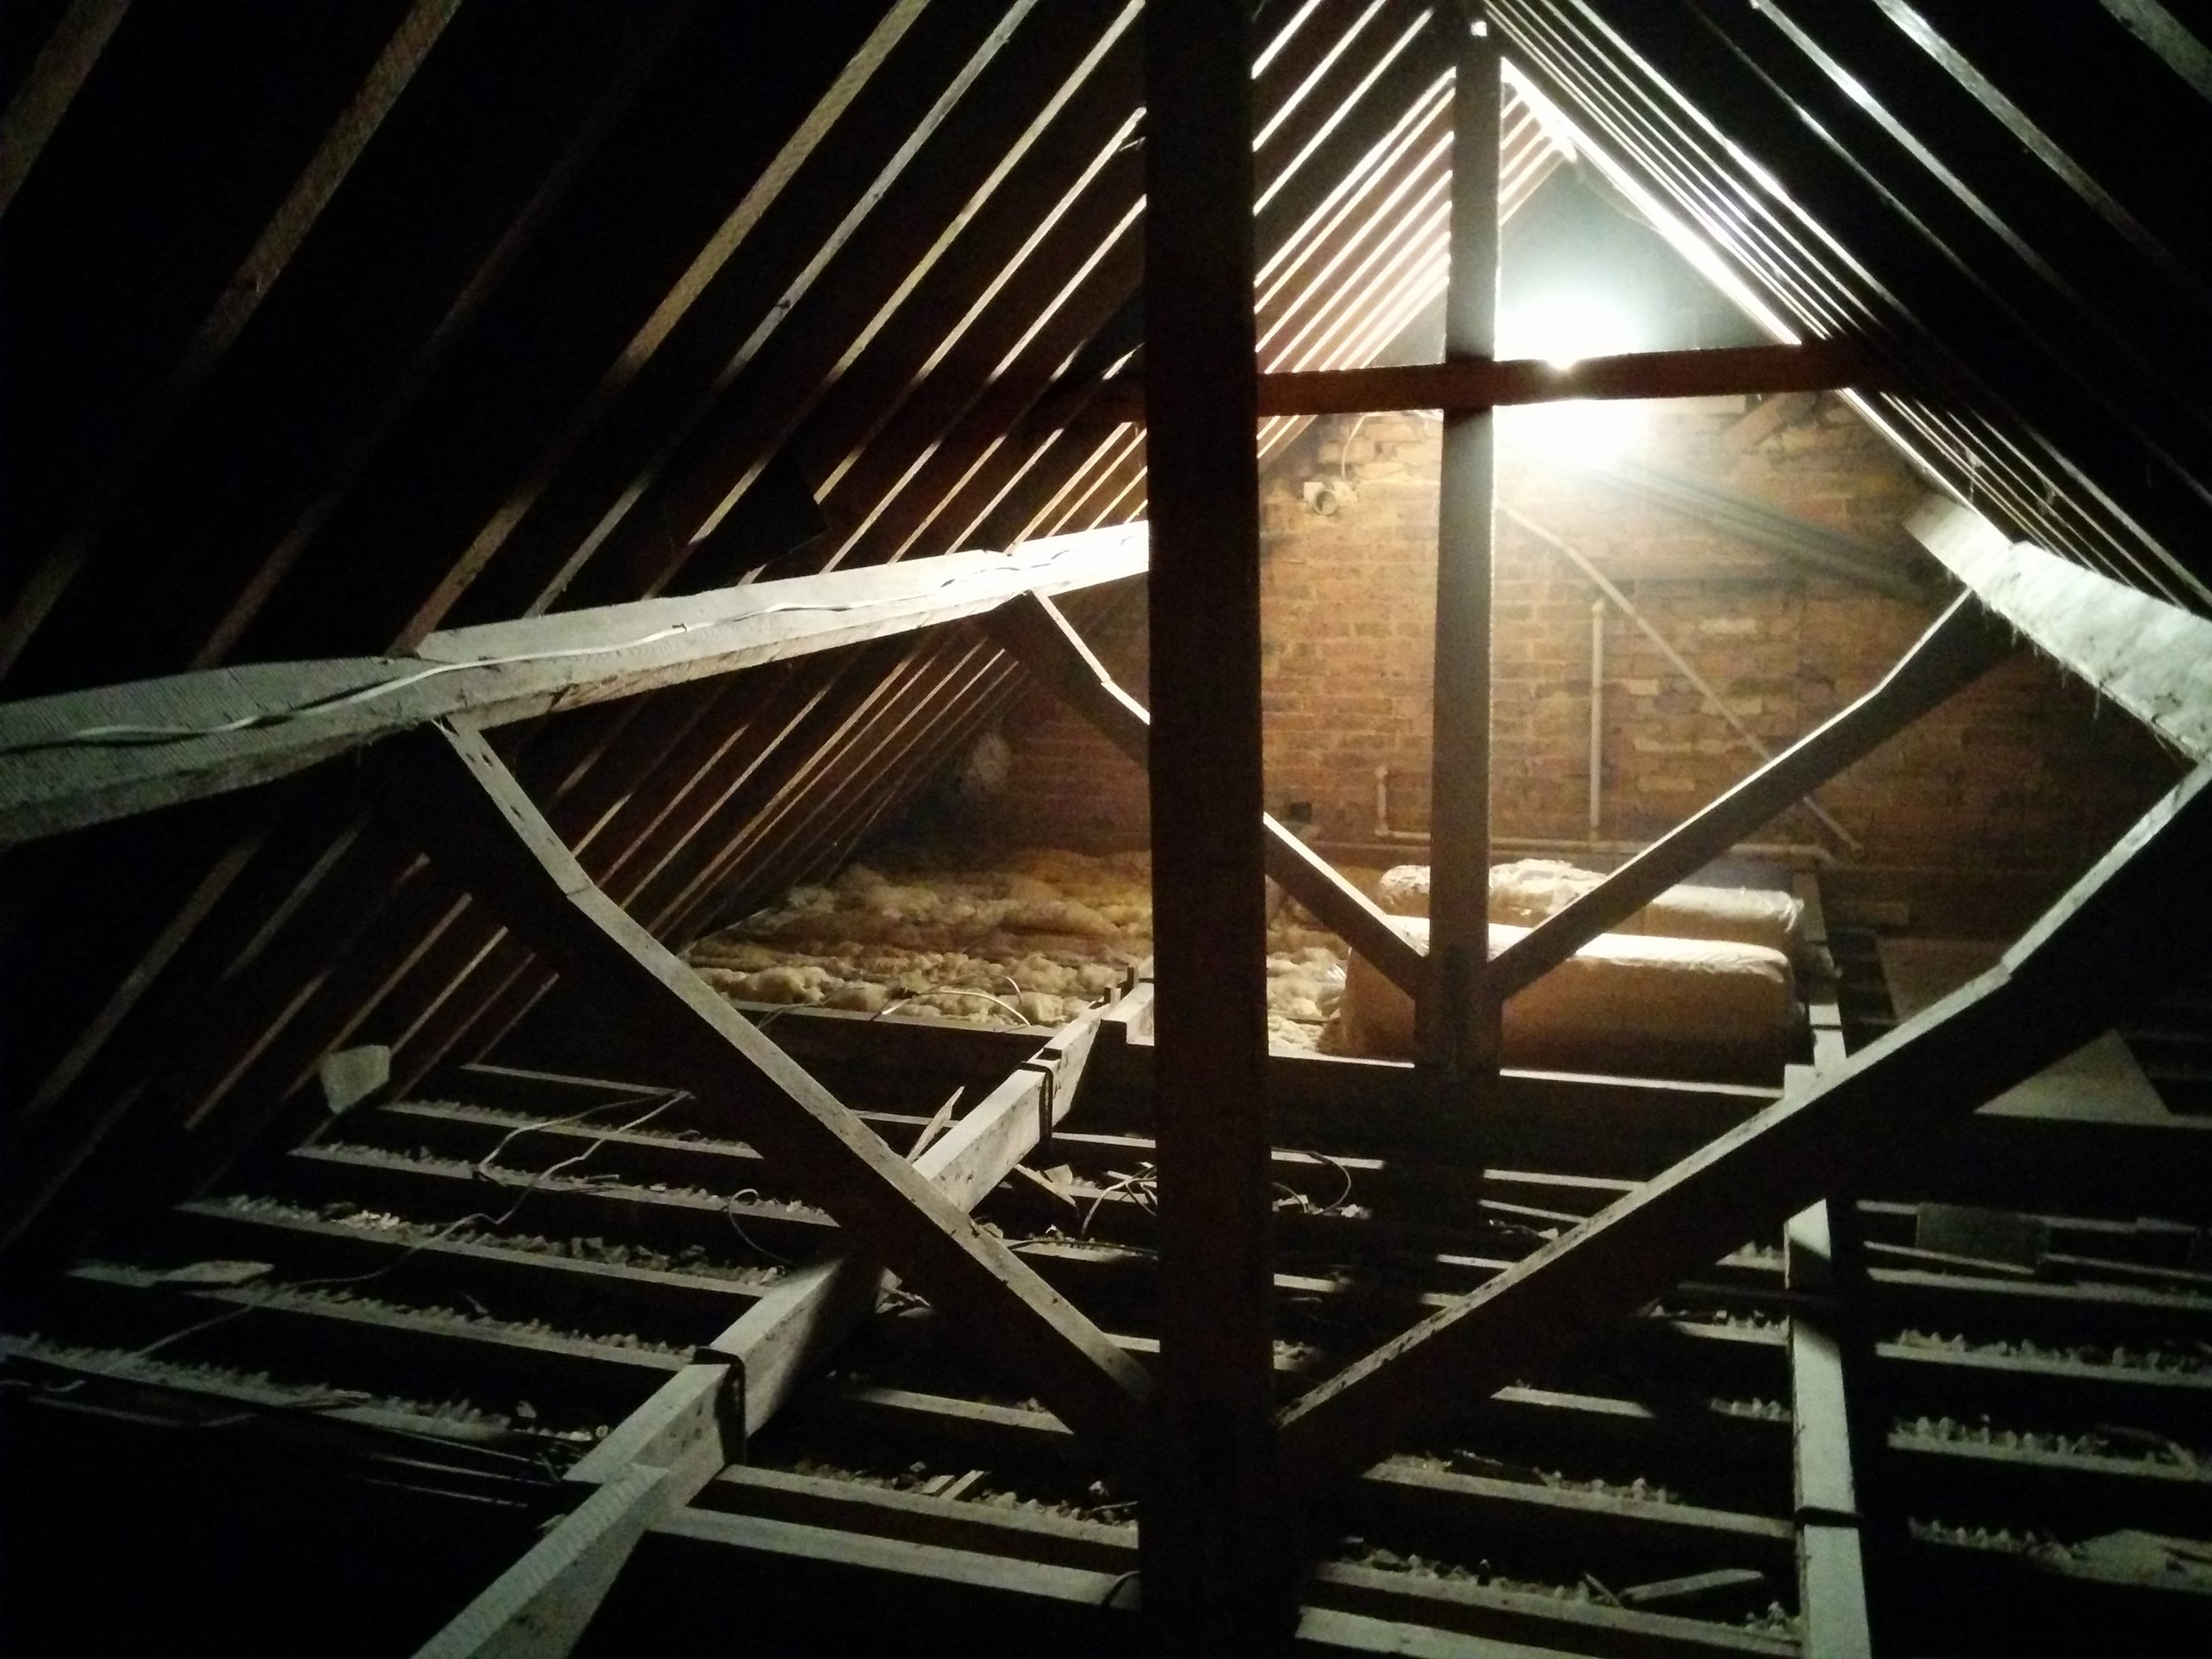 And this is the roof space. If it looks clean, believe me it was not. 100 years of plaster dust and squirrel droppings made for some unpleasant crawling about.